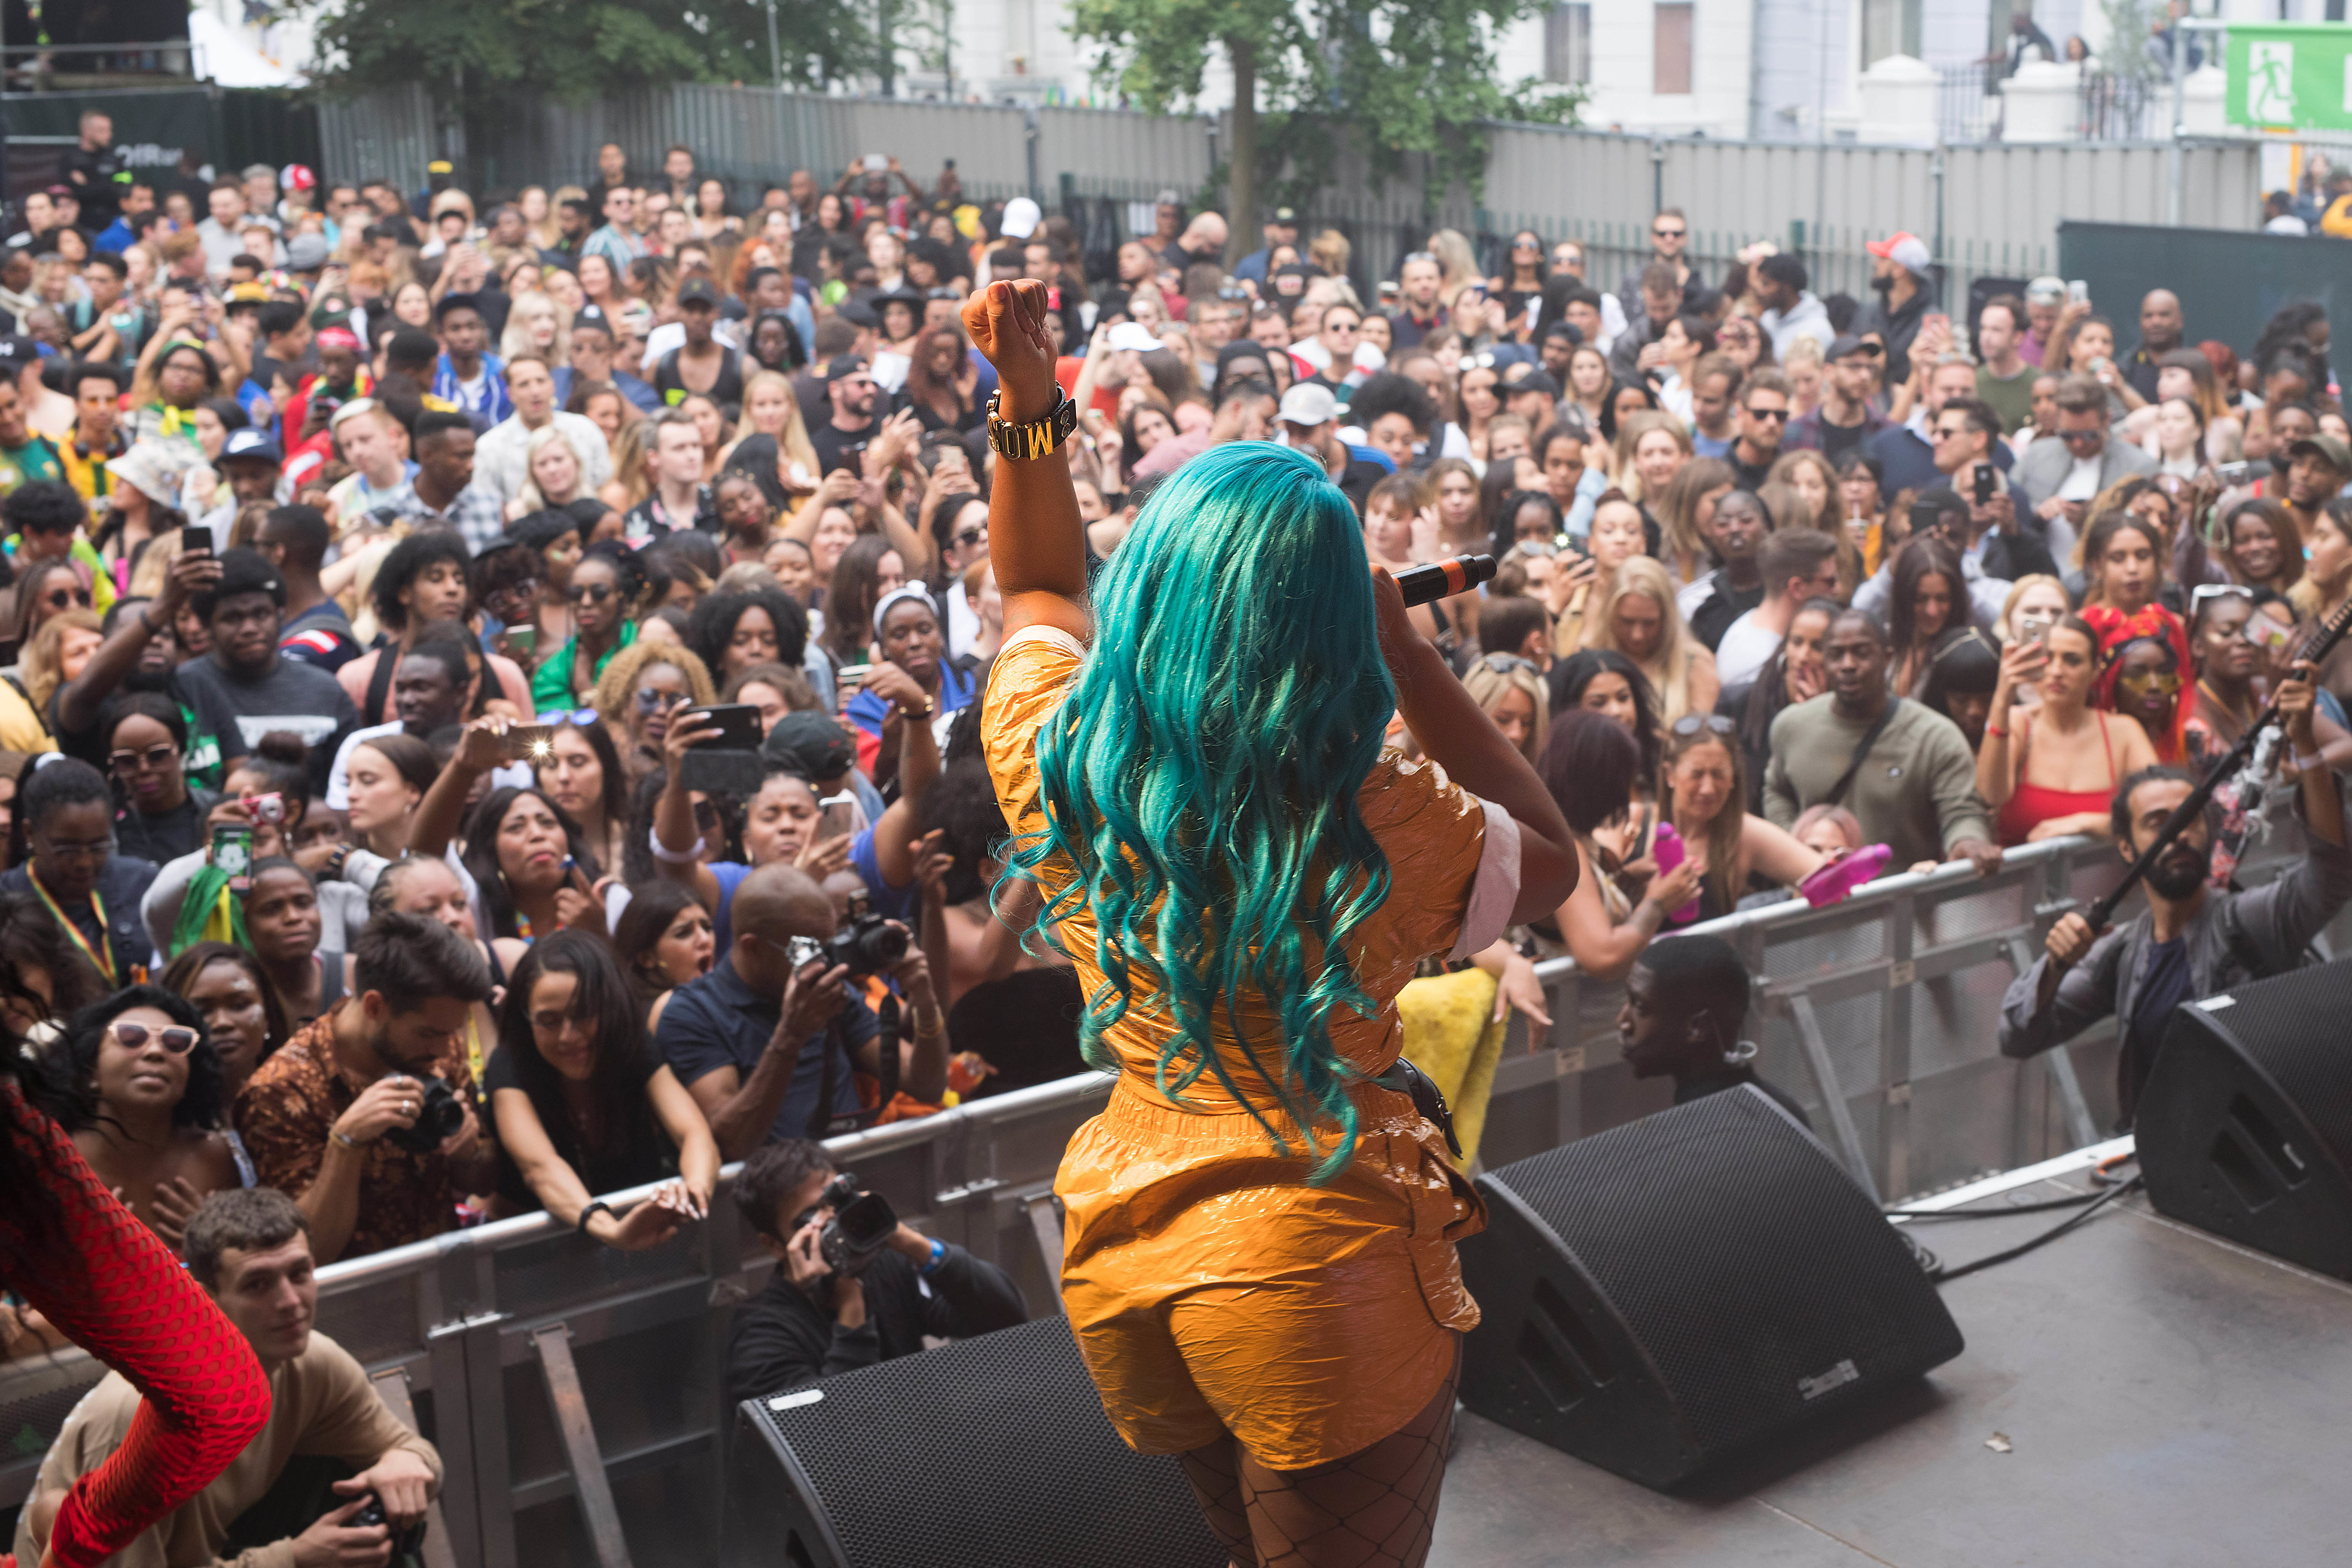 Stefflon Don Will Be Performing Alongside Cardi B At Wireless 2019. Credit: PA